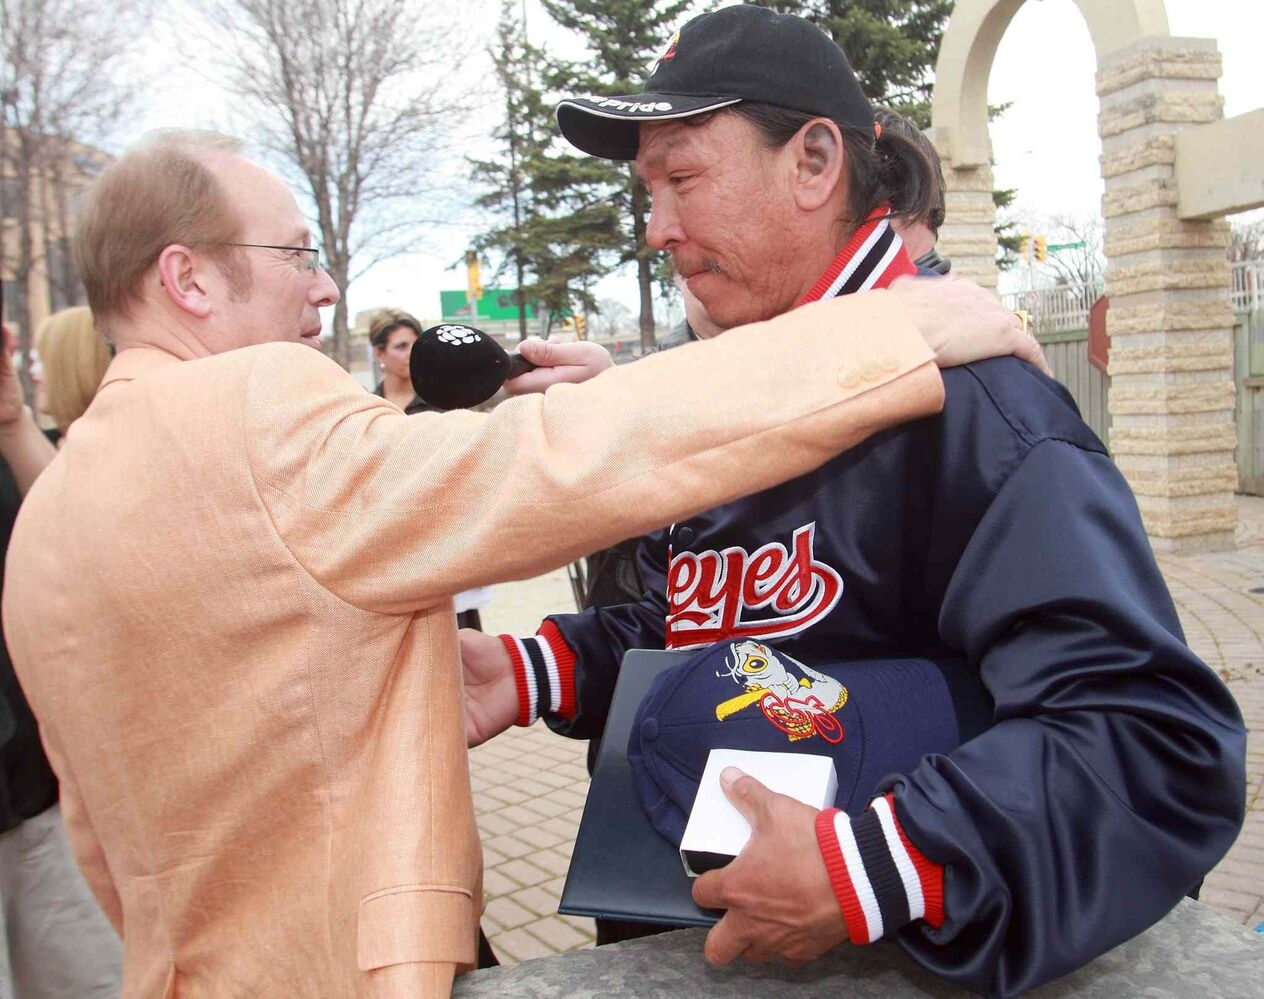 May 6, 2009: Faron Hall gets a hug from mayor Sam Katz after Katz presented him with a City Of Winnipeg Medal, Goldeyes hat and  jacket, and a Goldeyes season ticket pass at a ceremony held  on the Red River Bank  near  the place where Faron saved a boy from drowning.